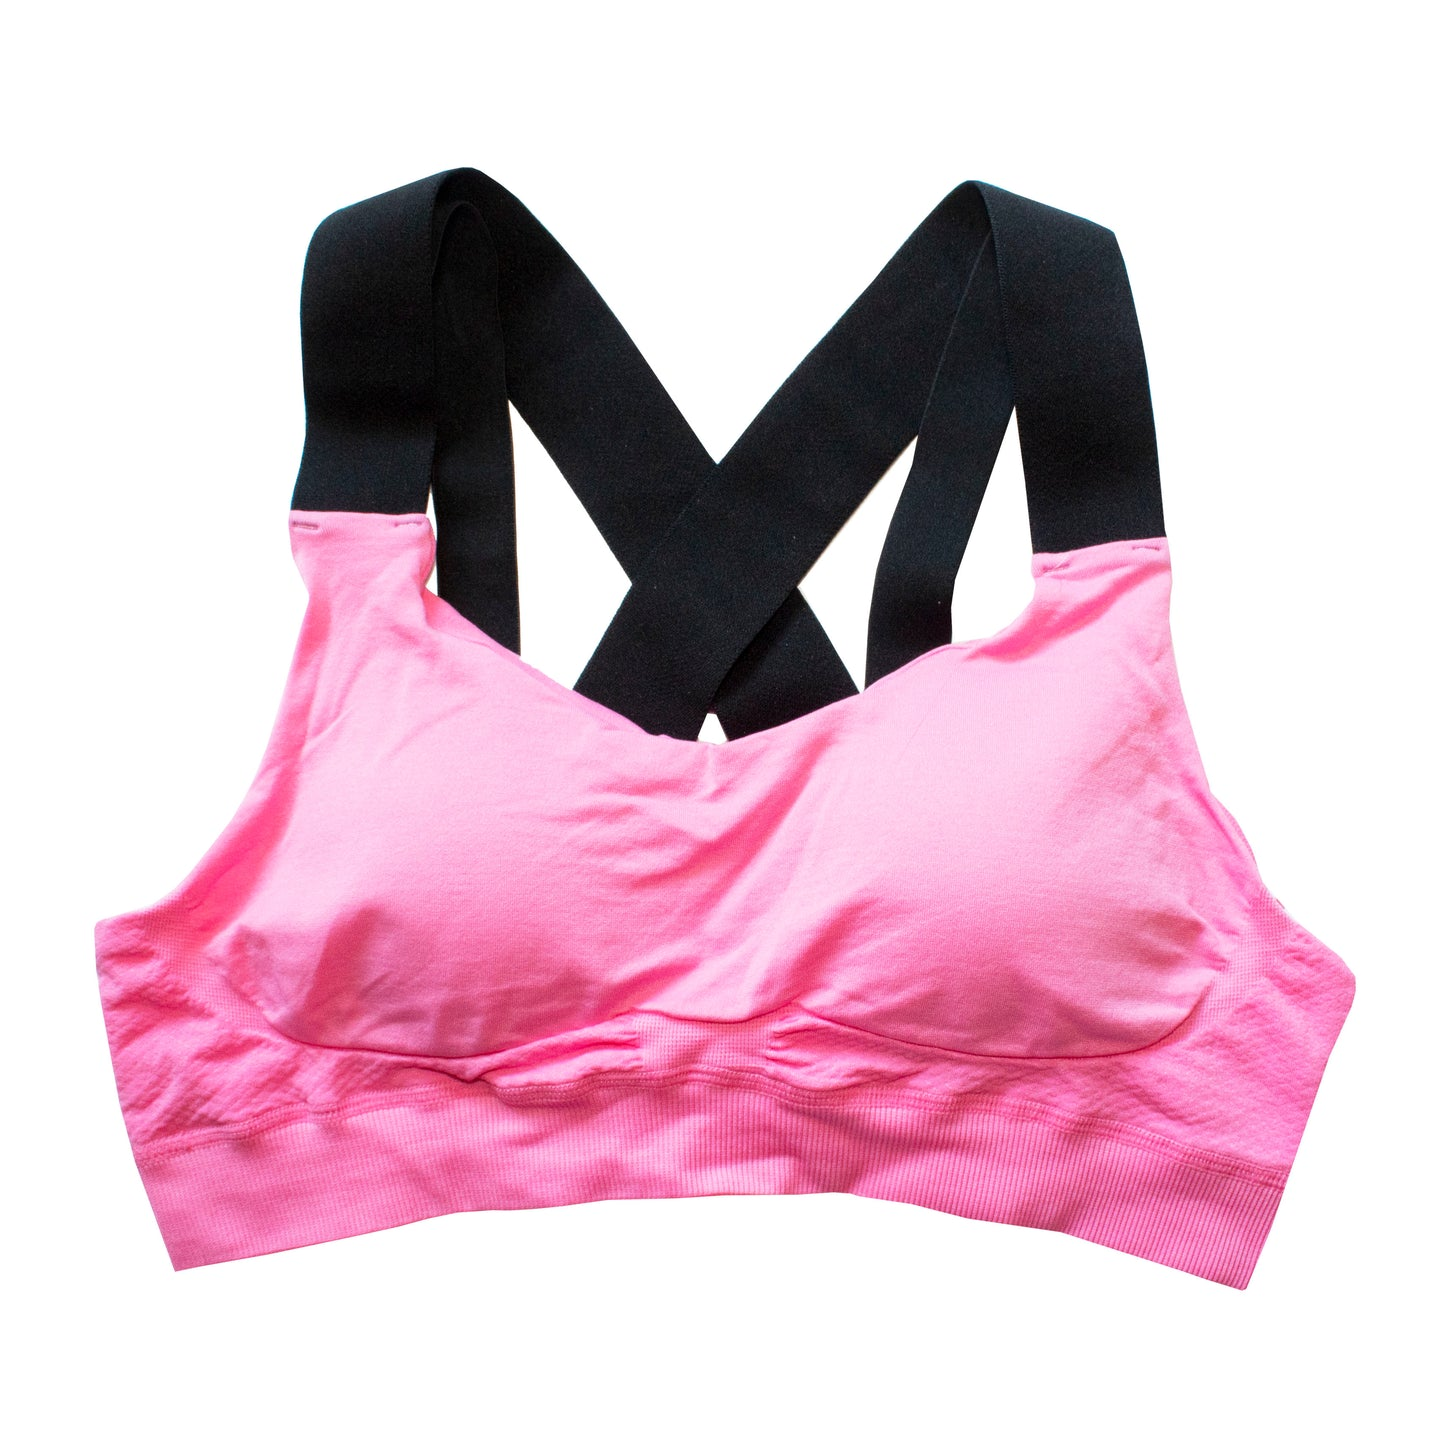 Bonnie's Strappy Large Bust Sports Bra